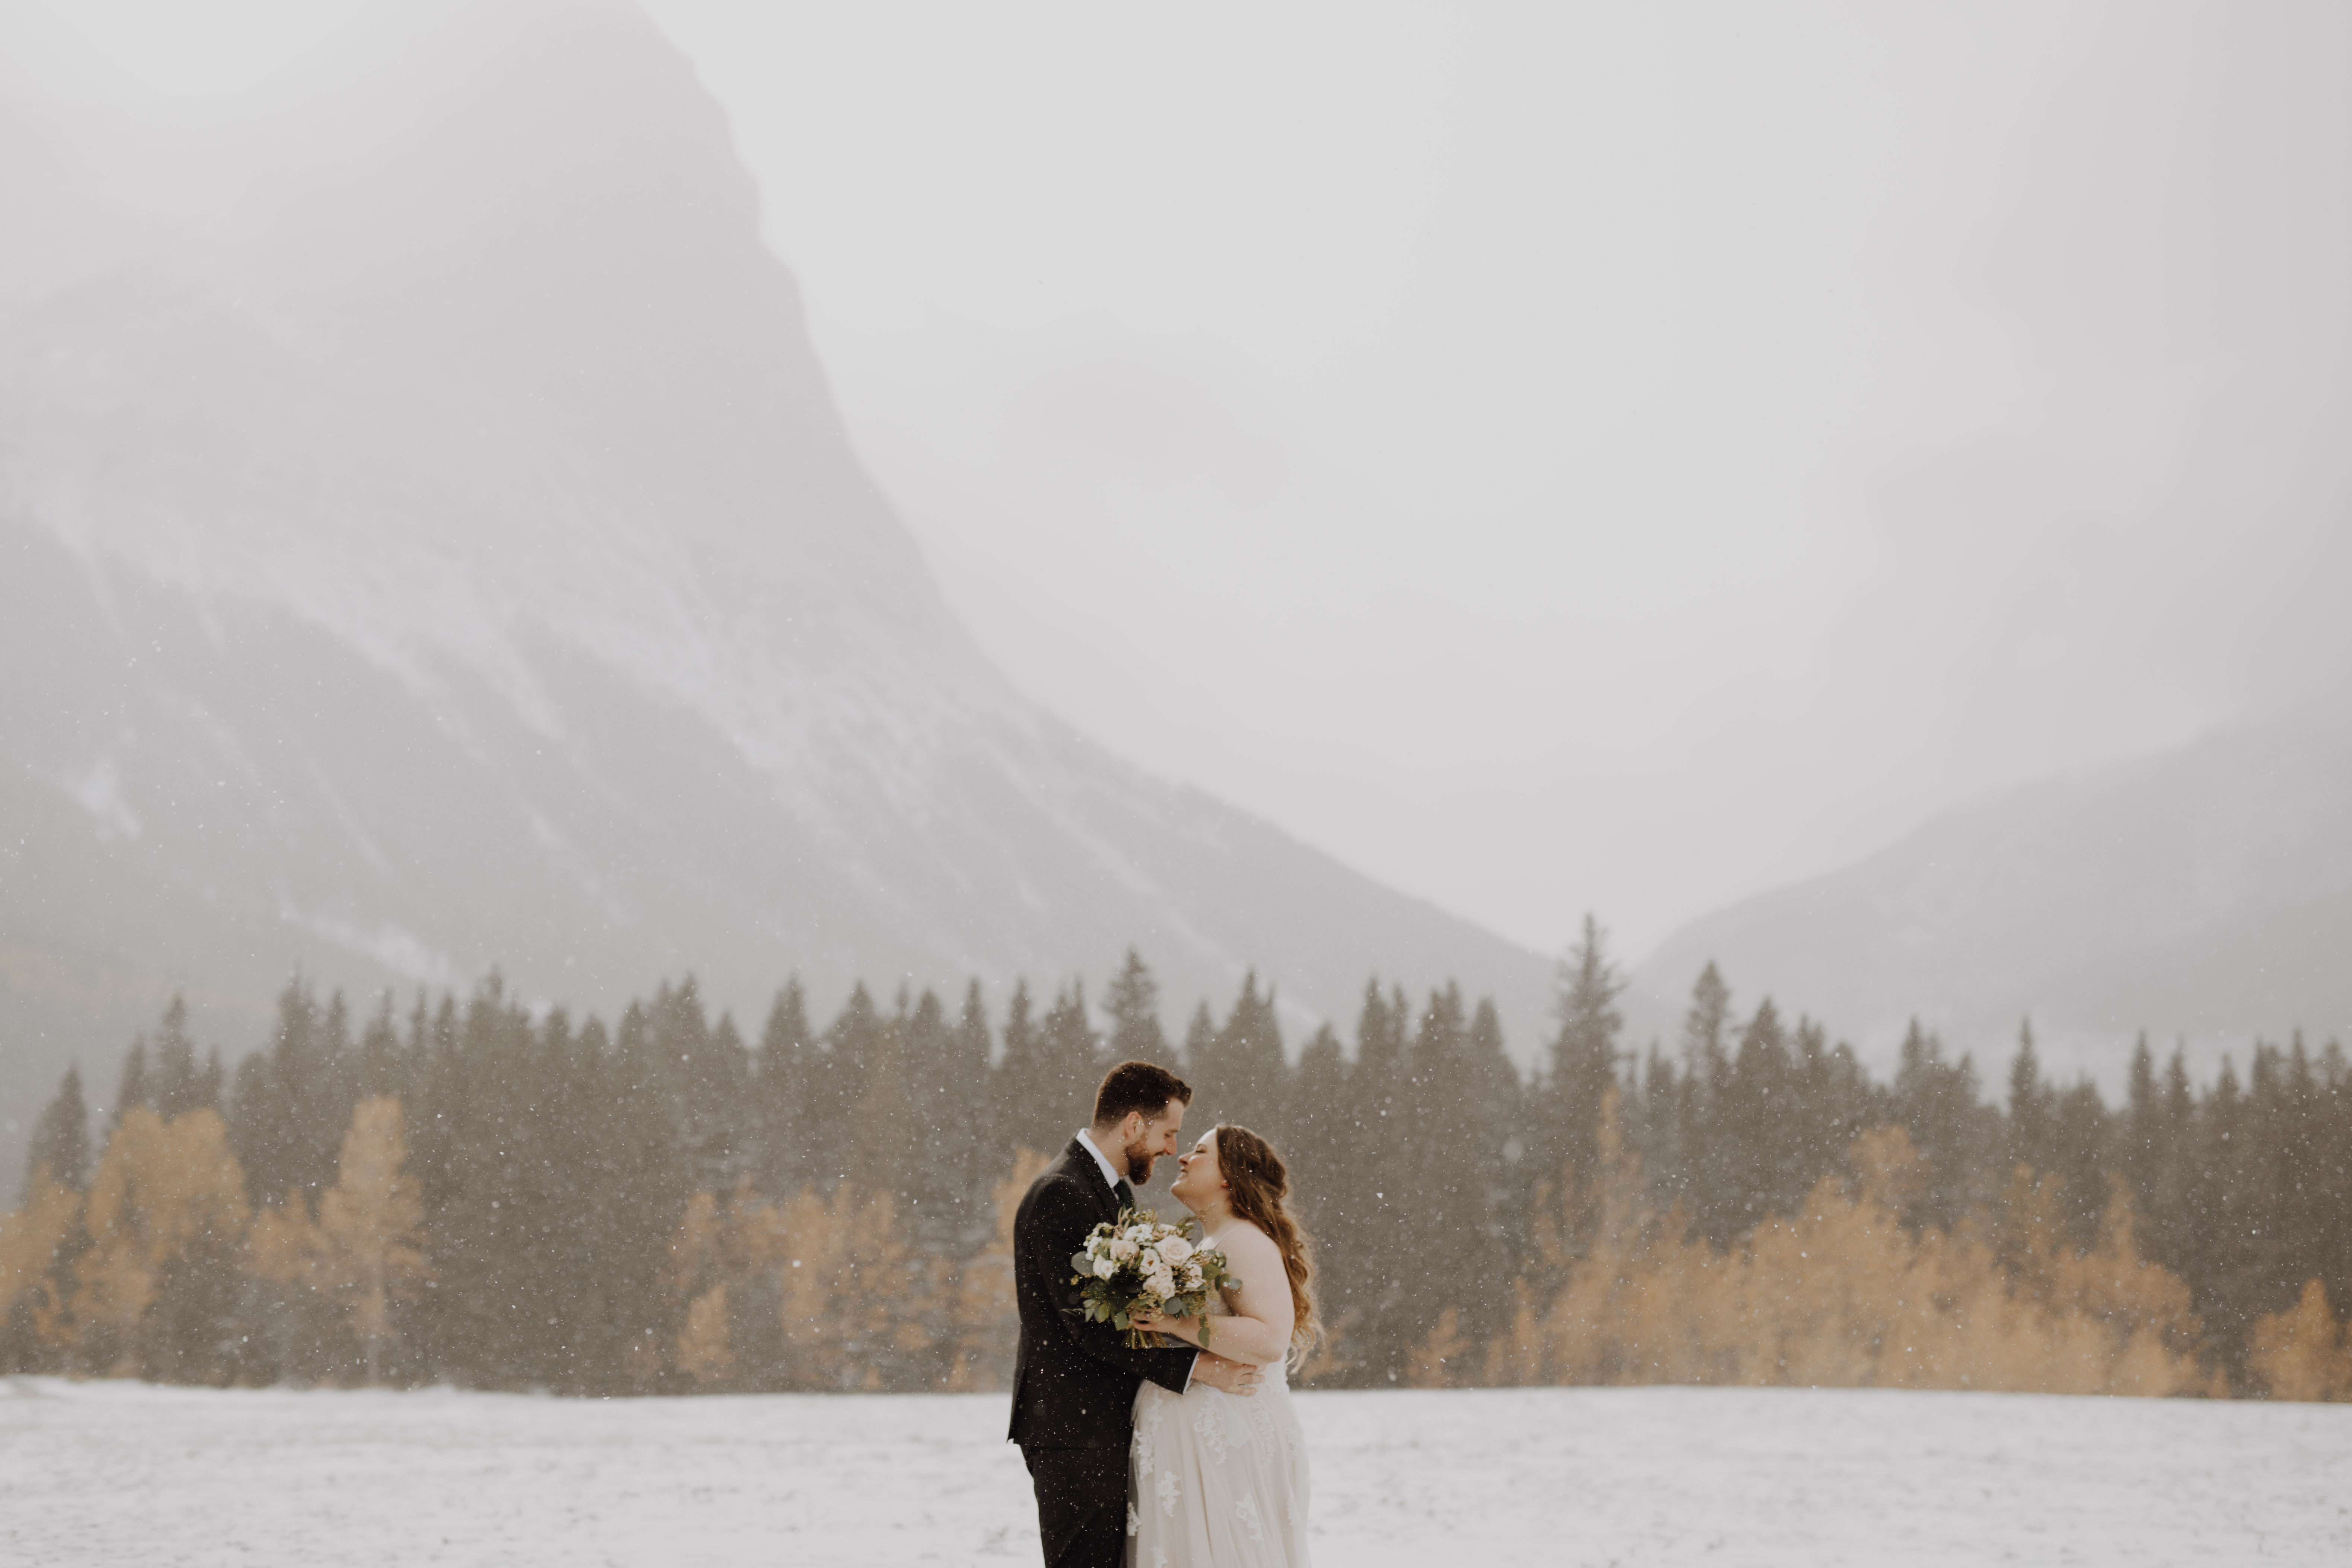 Banff Wedding in the winter